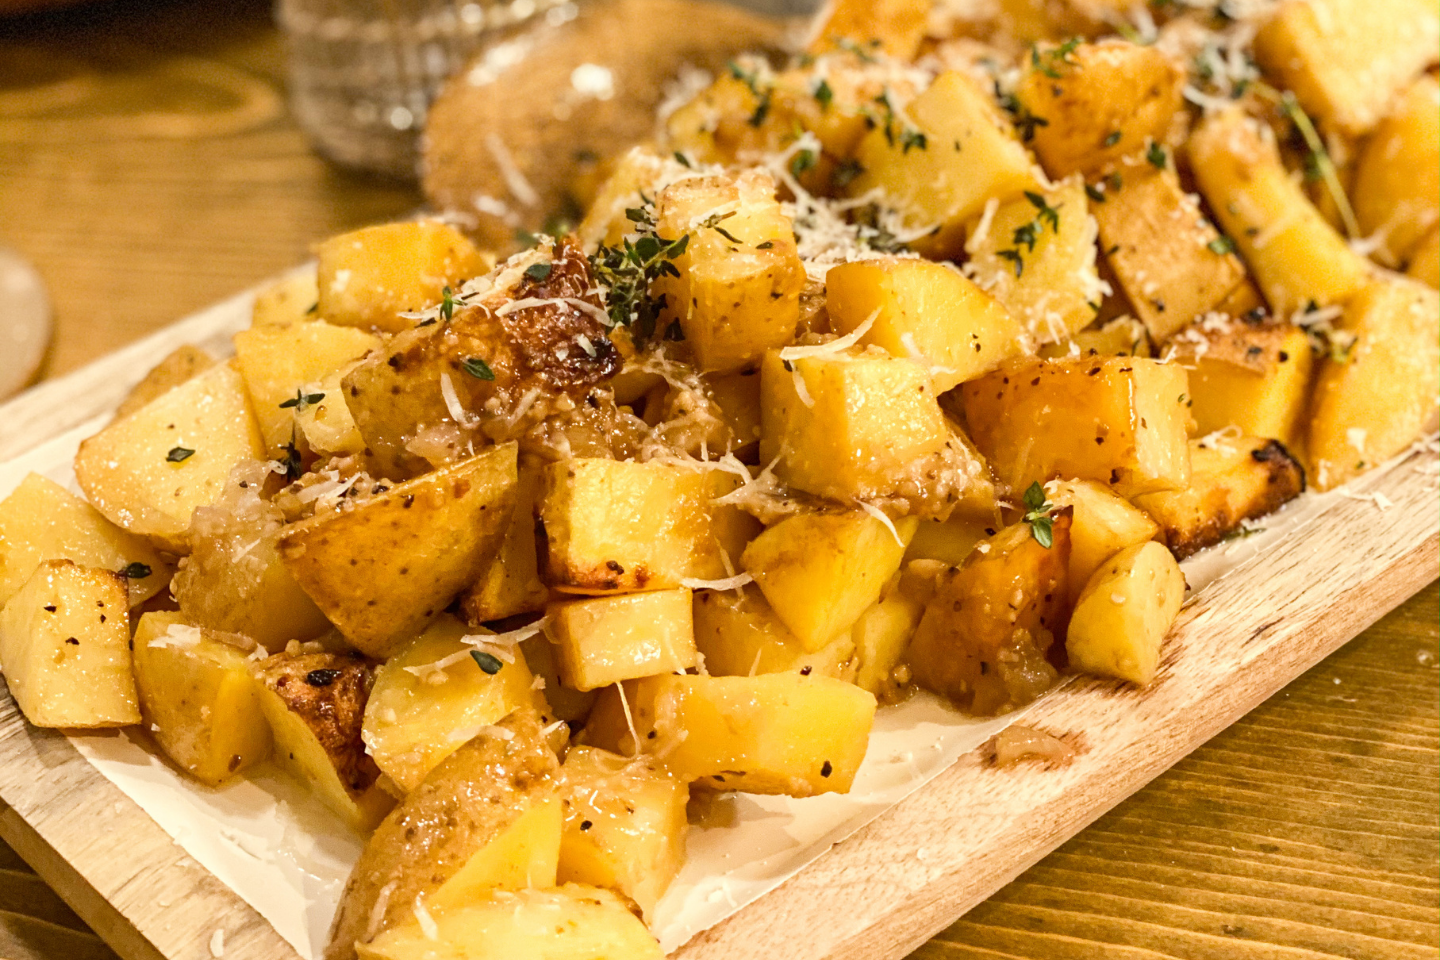 roasted potatoes on a cutting board